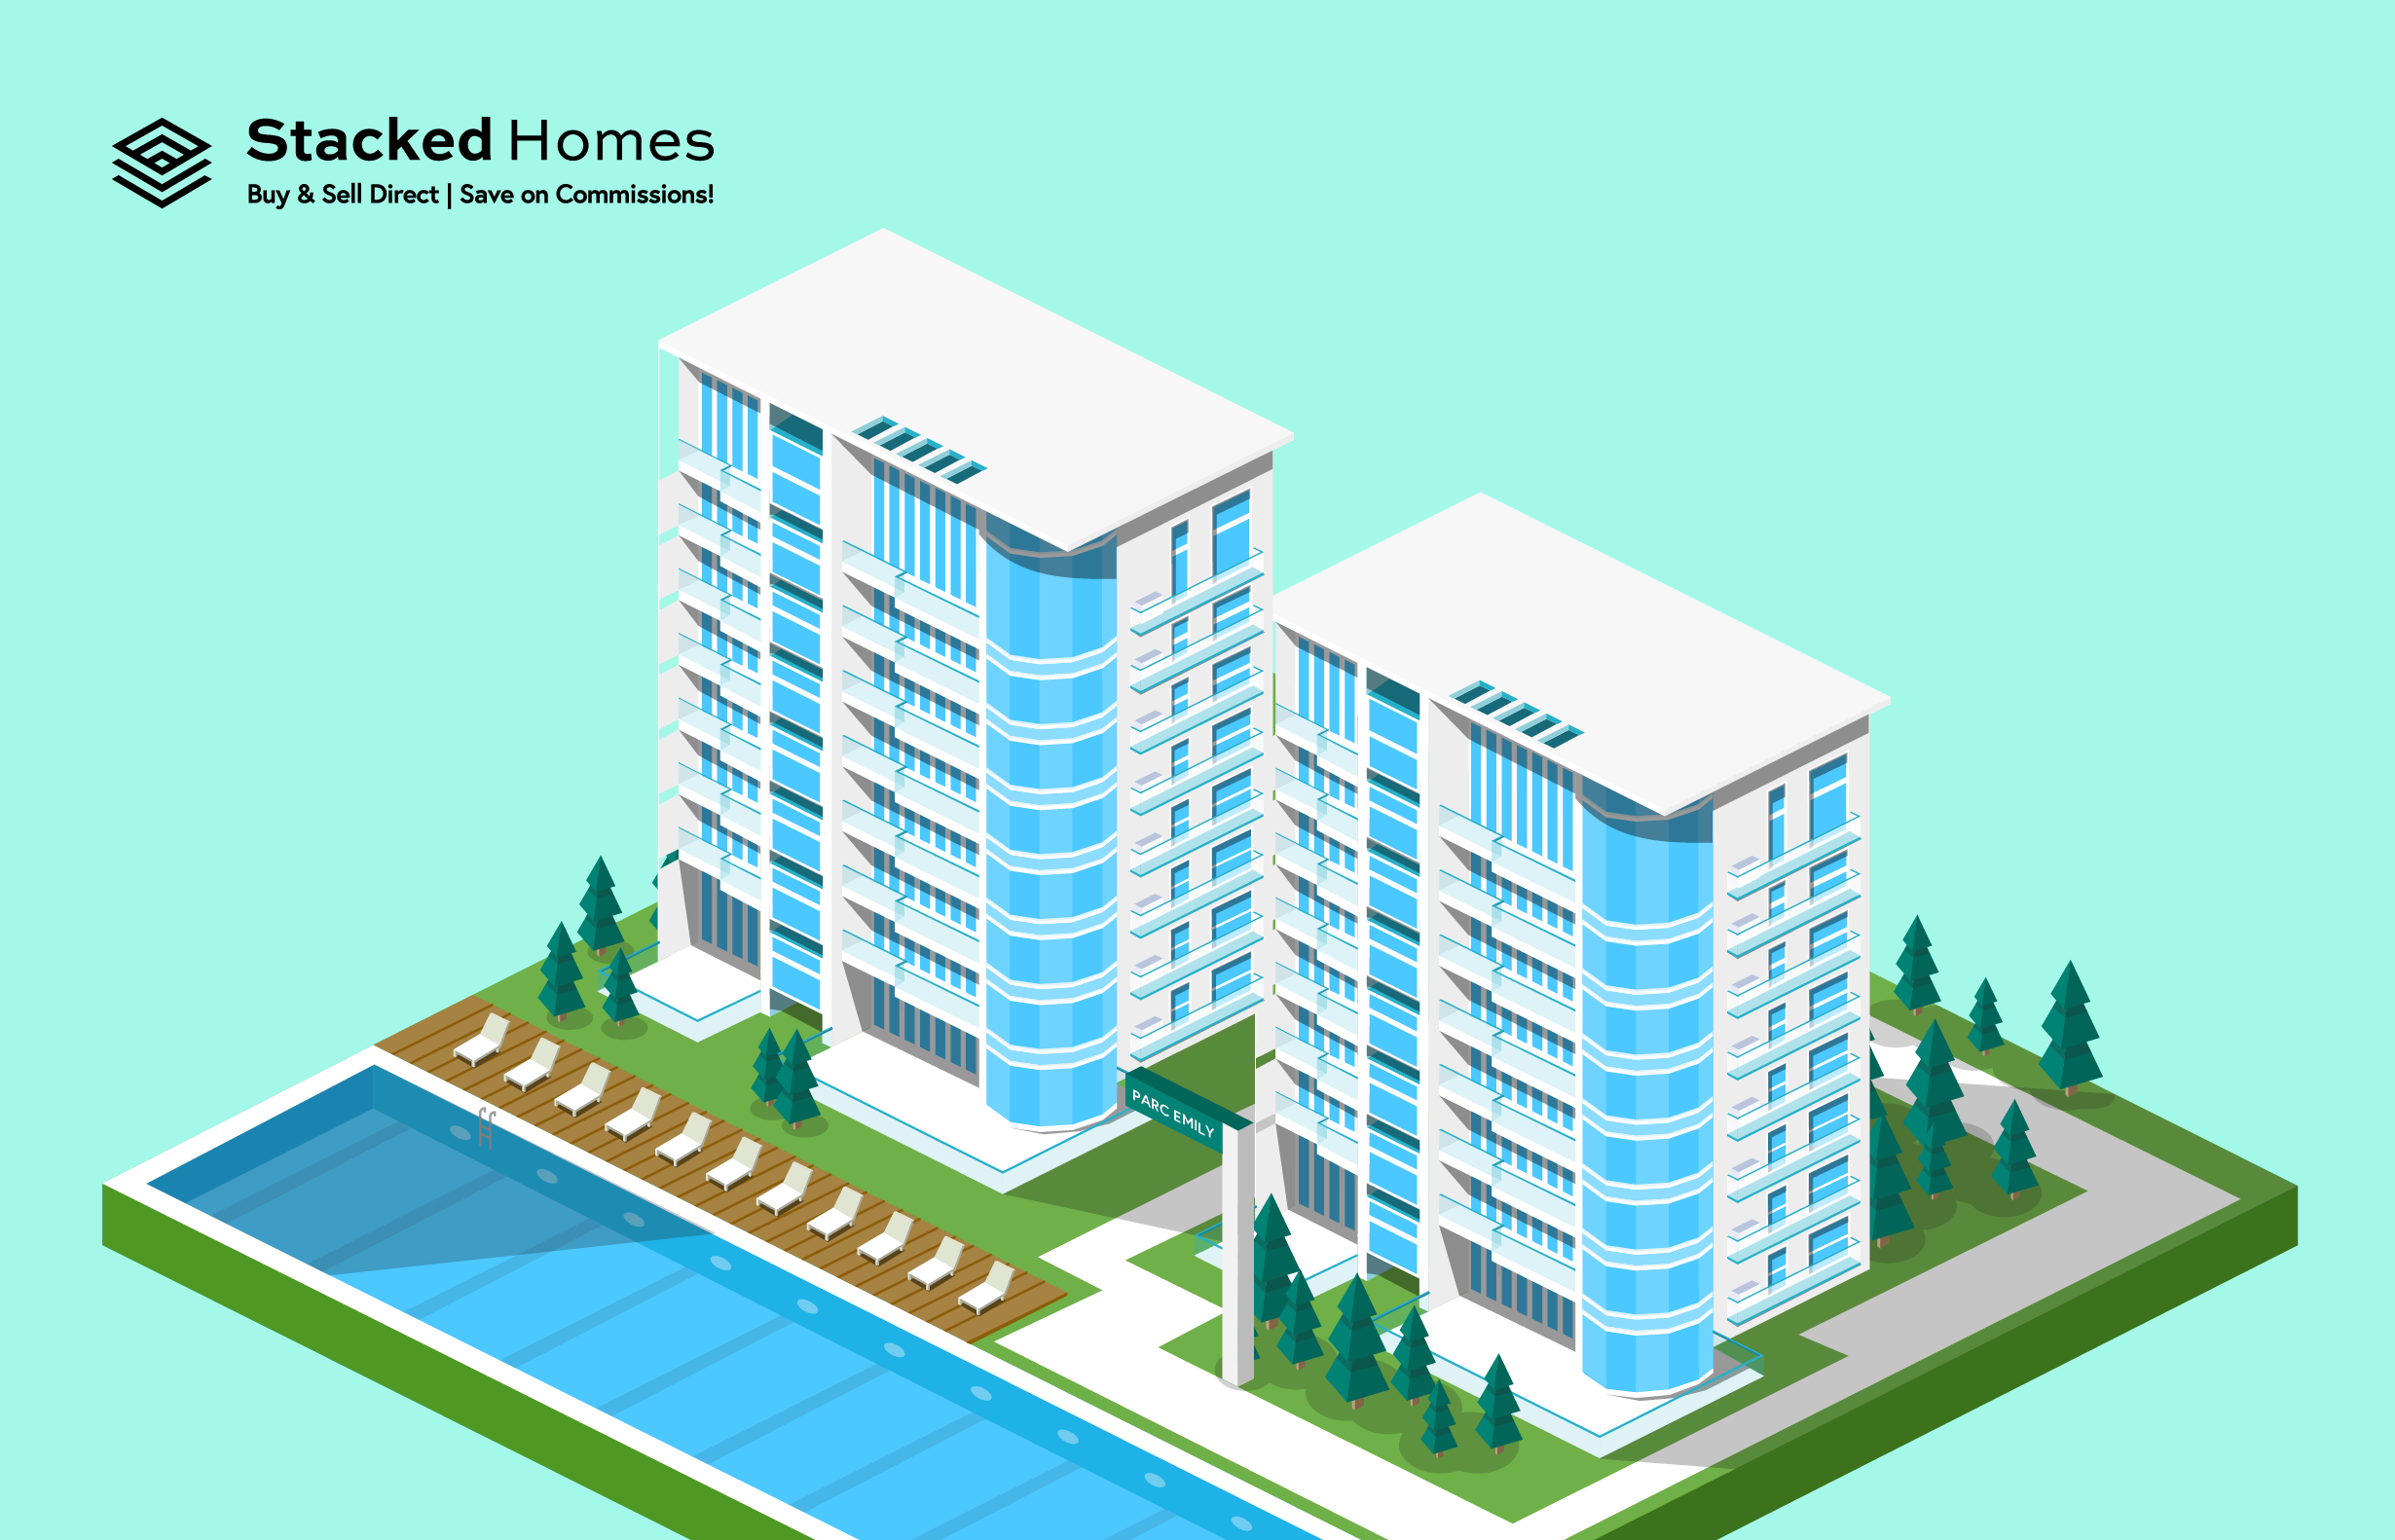 Parc Emily: Buy and sell homes direct Singapore save on commissions